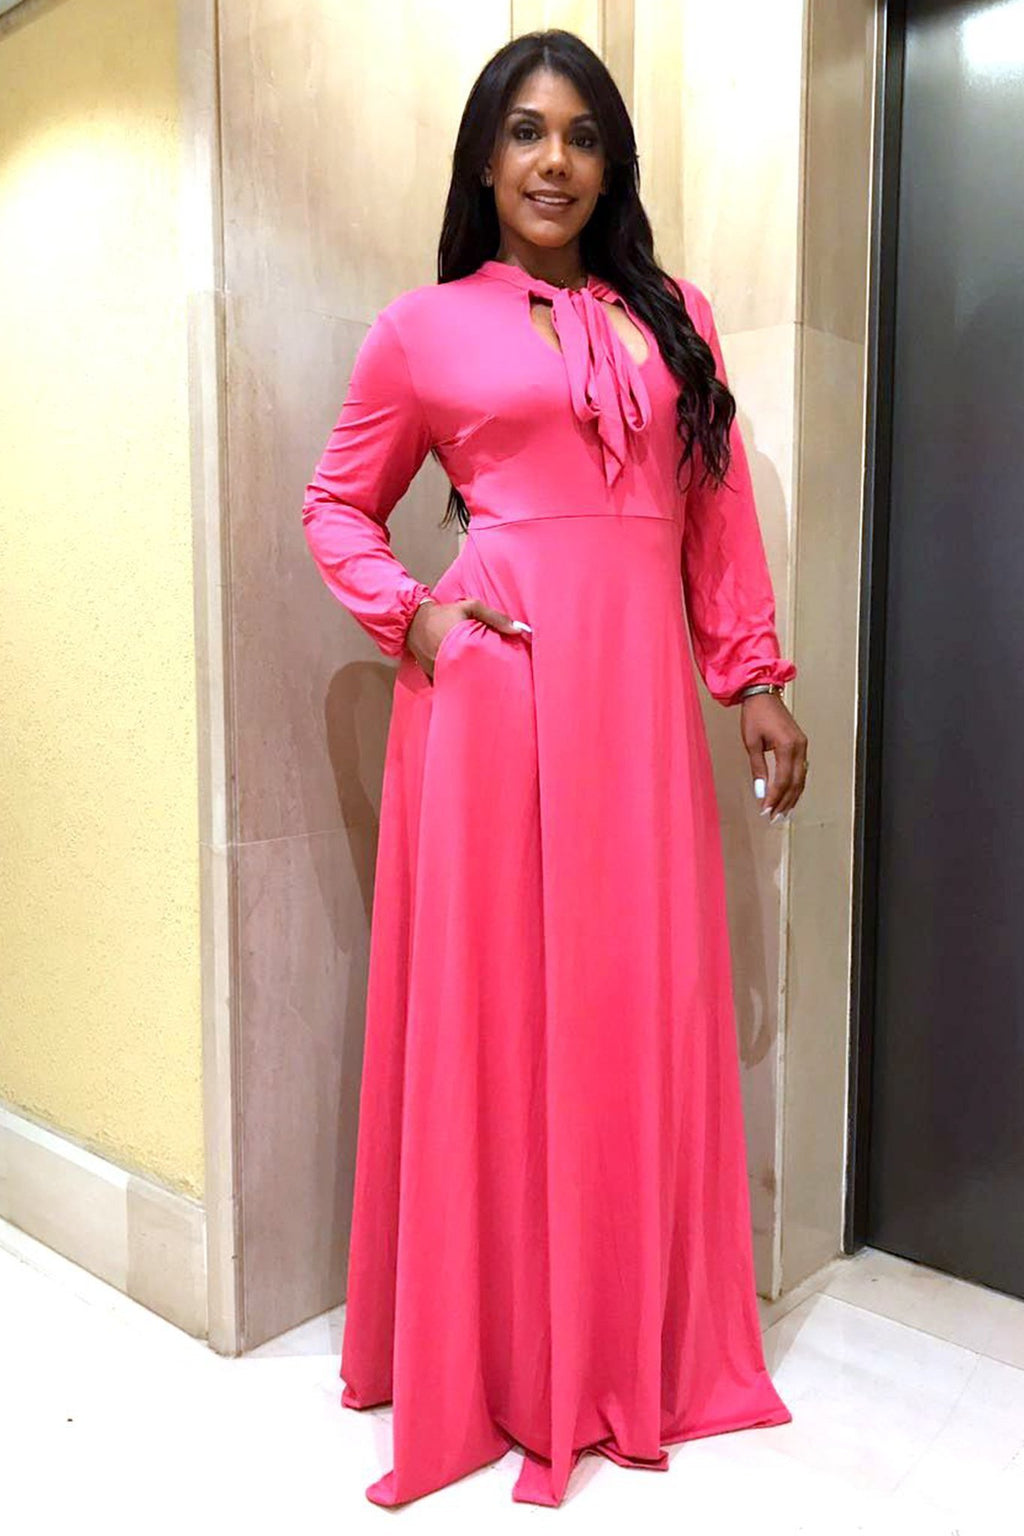 Rose Pink Long Sleeves Bodycon Neck Tie Maxi Plus Size Dress - MY SEXY STYLES